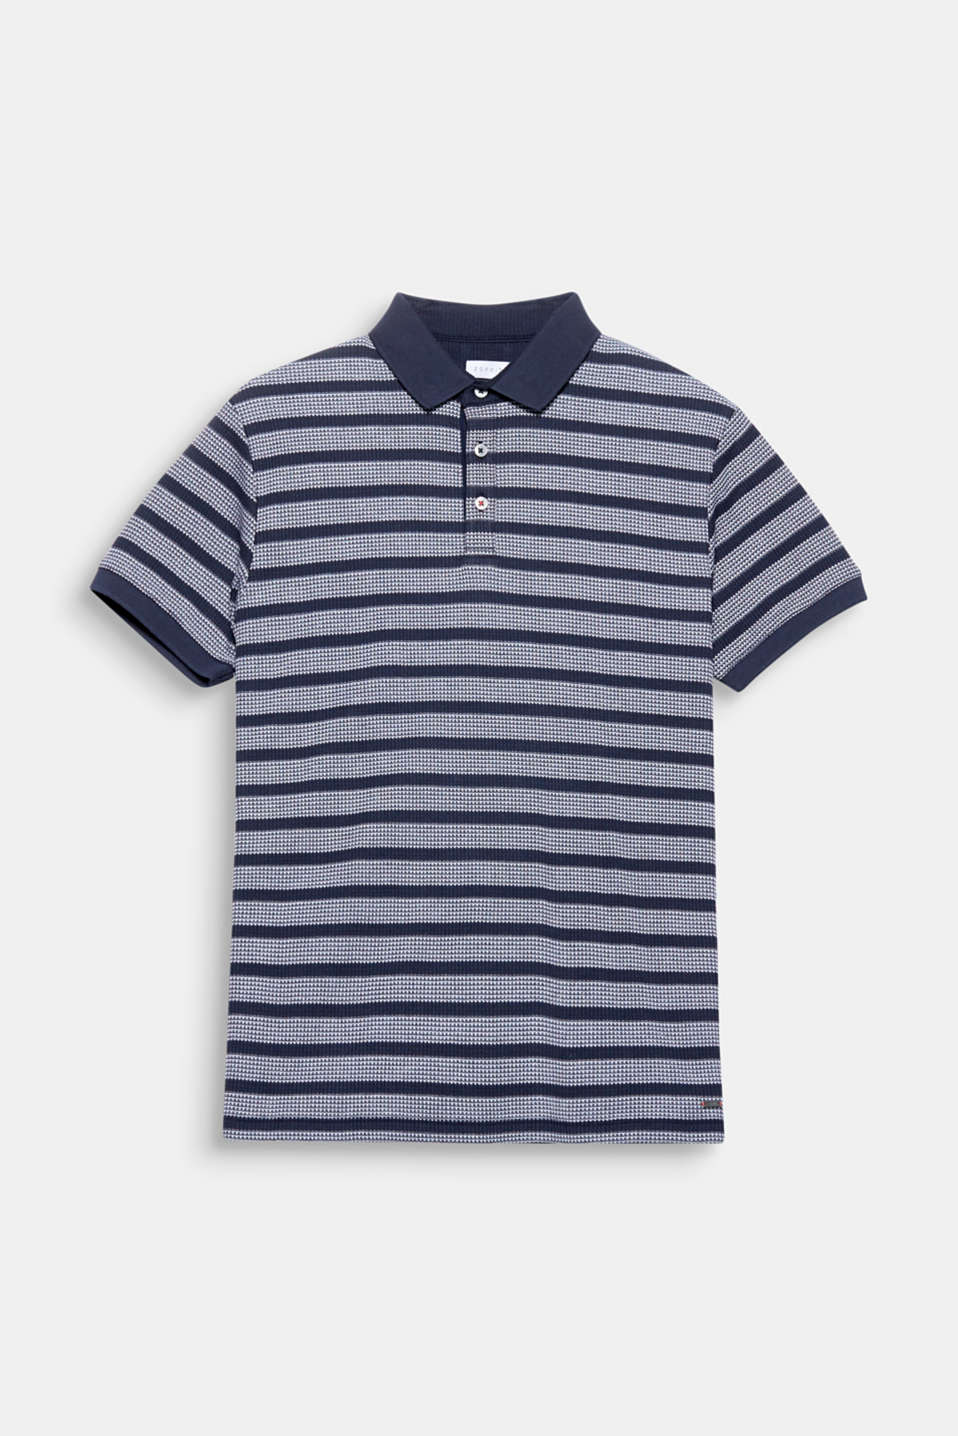 We love texture! The three-dimensional piqué texture gives this polo shirt a high-quality look.